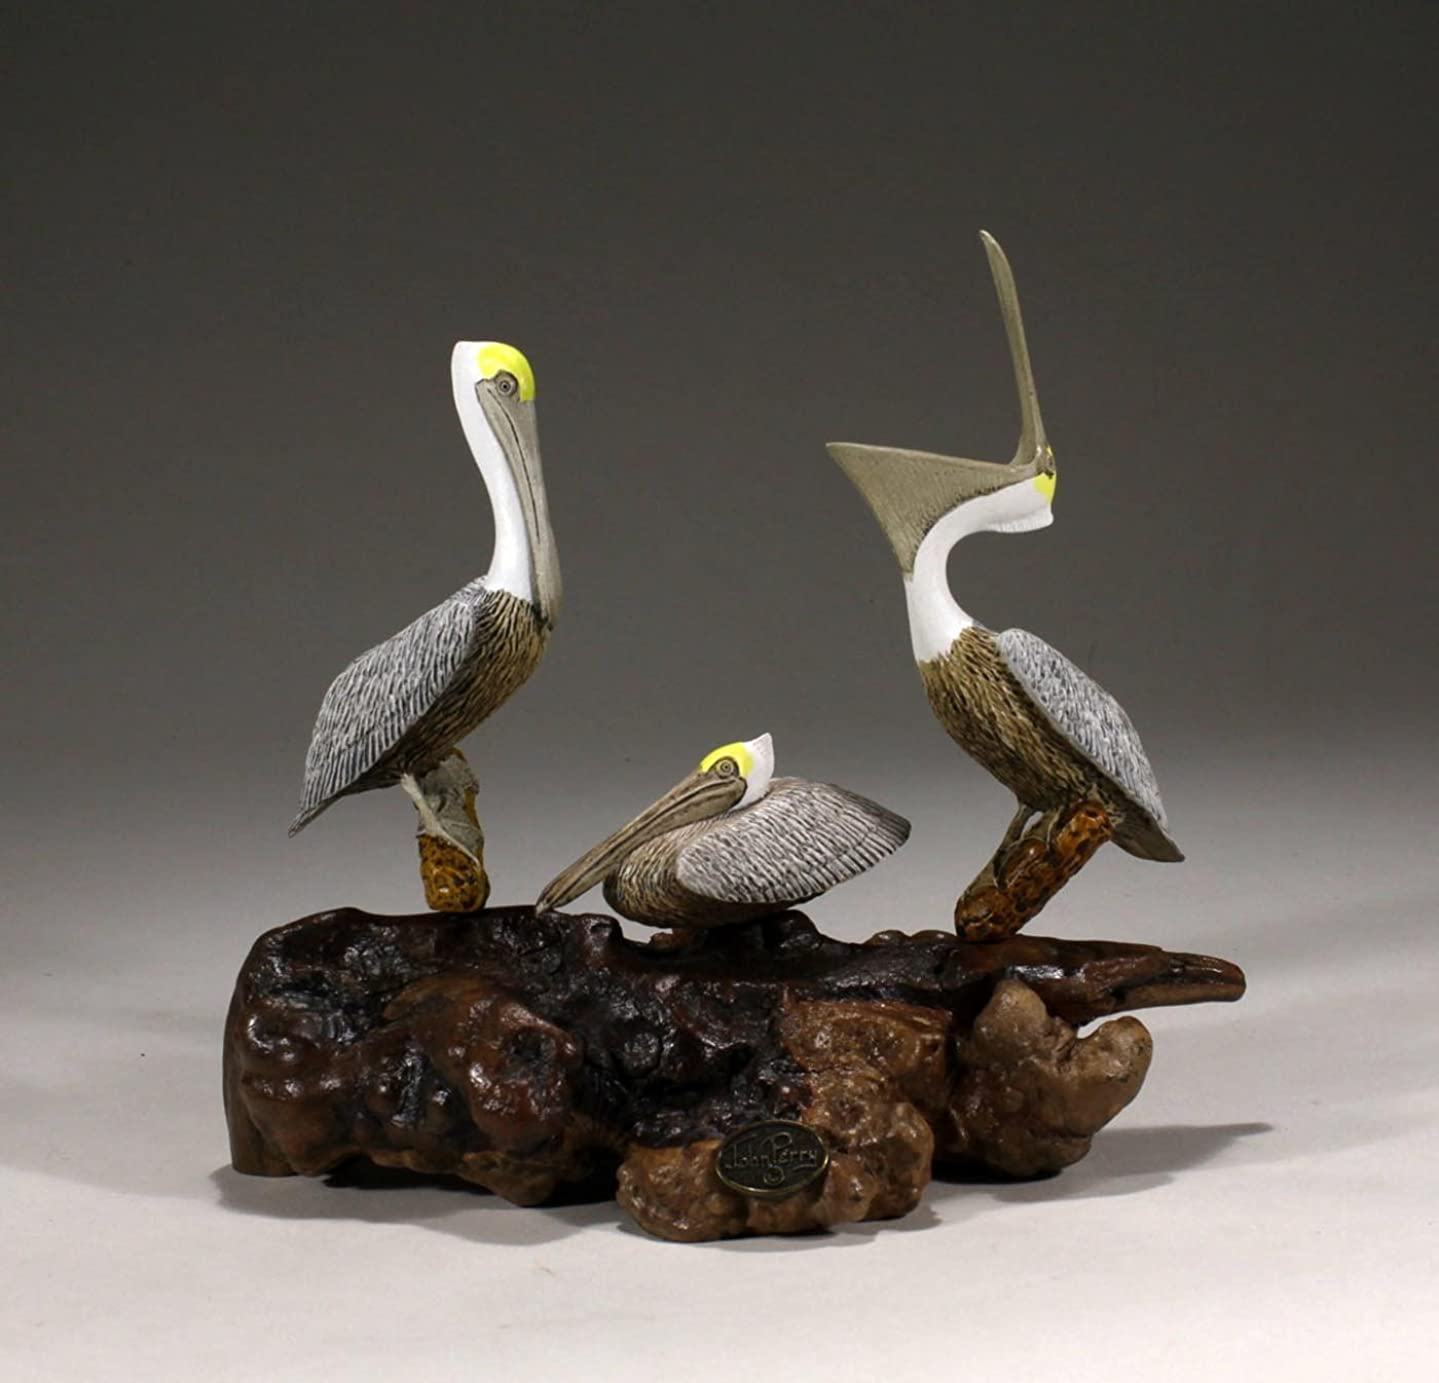 Triple Pelican Sculpture from John Perry 8in Long on Burlwood Statue Decor (perching, laughing, snoozing)